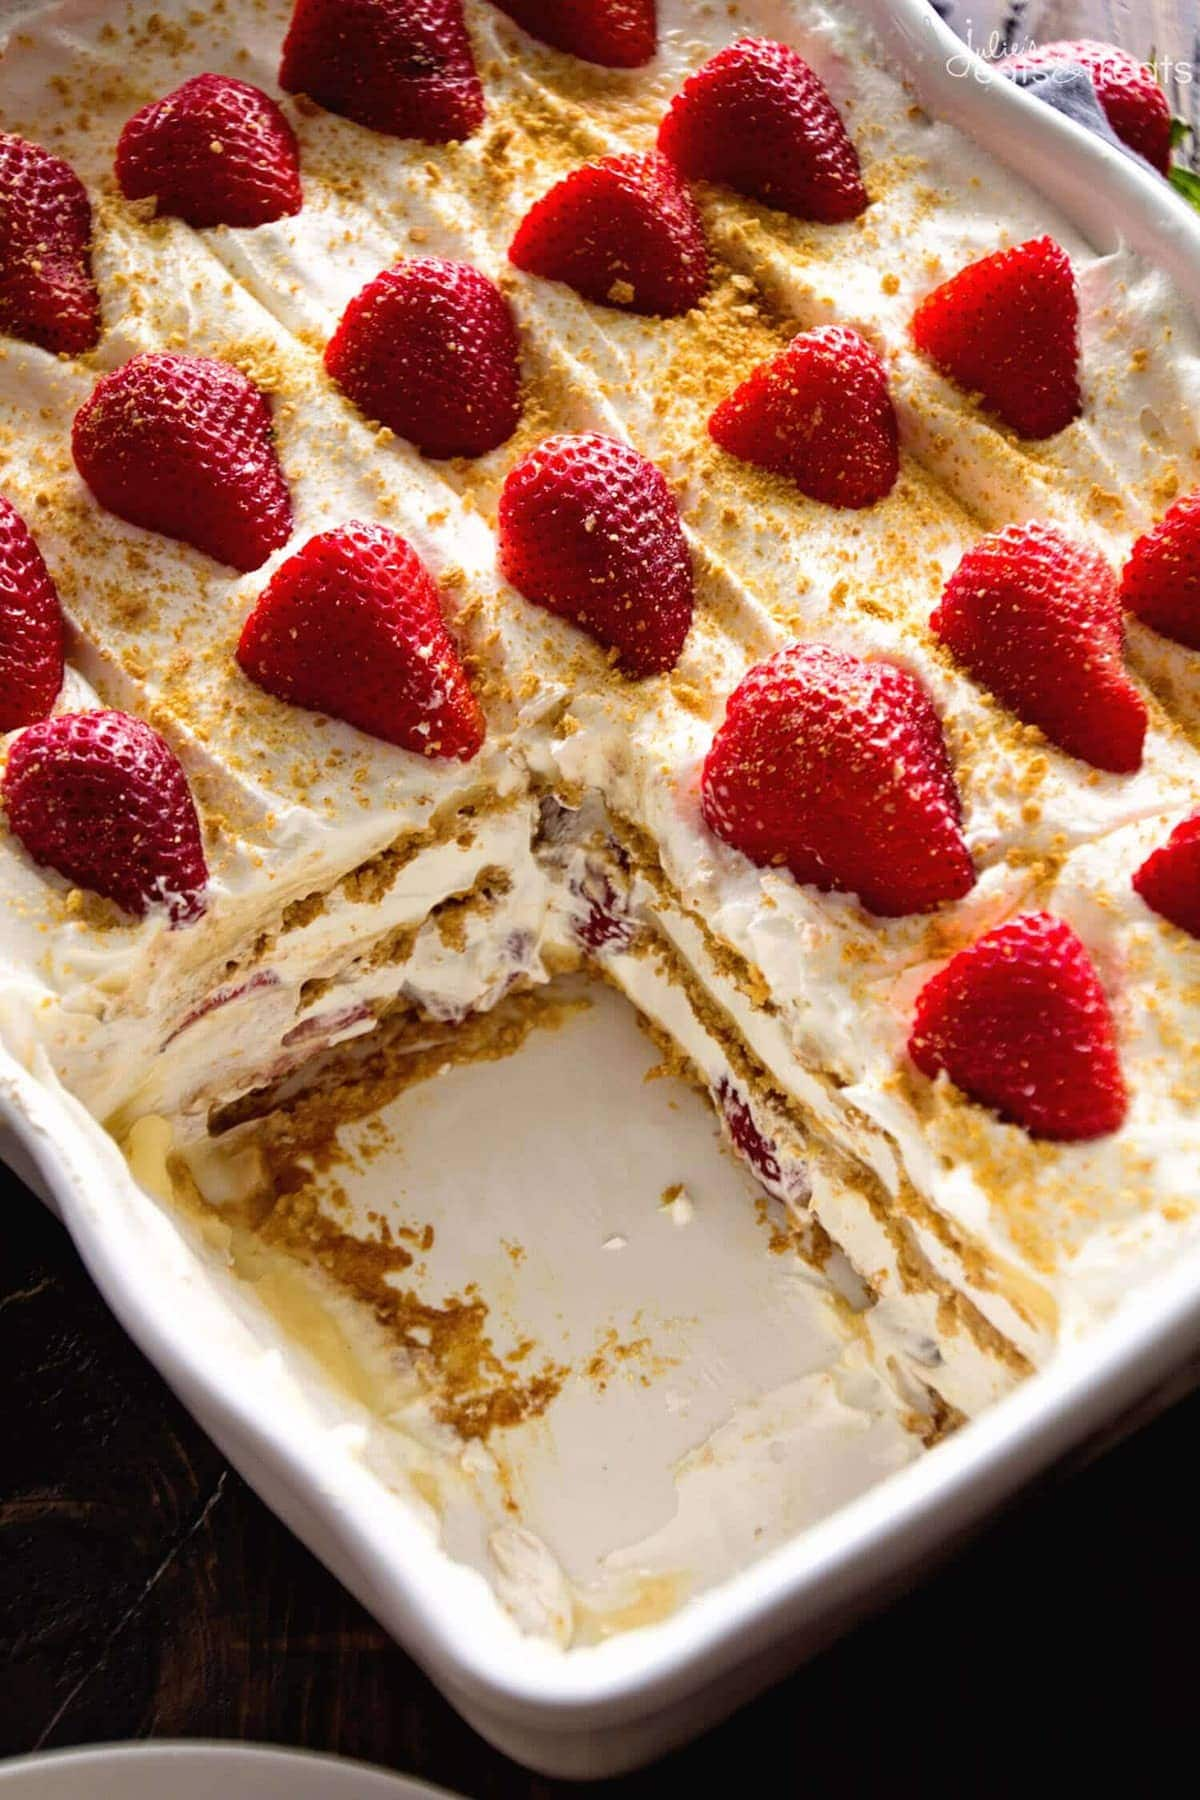 Banana Bread Pudding No Bake Strawberry Che...